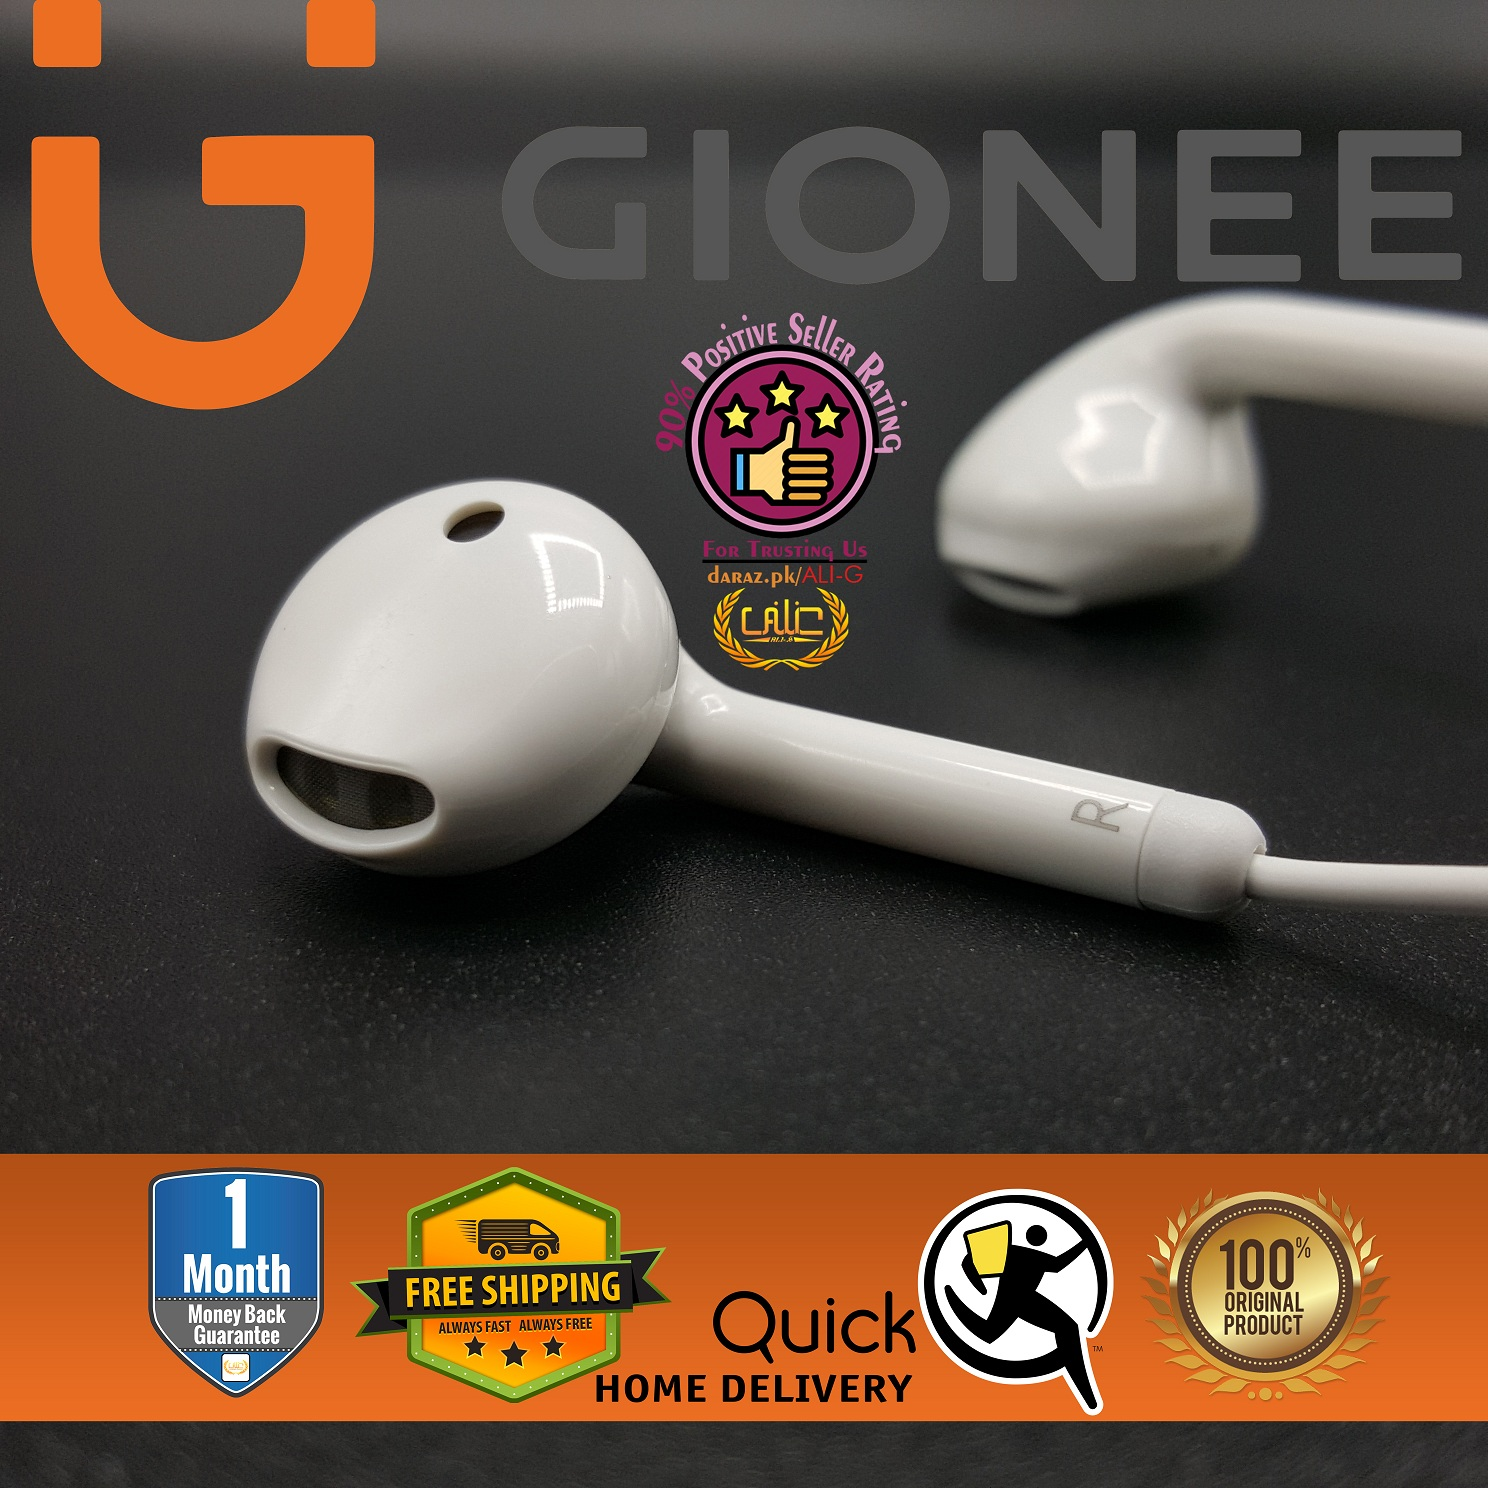 Gionee Original Wired Earphone Mobile Handsfree for Gaming PUBG Music Bass Hand Free with Mic Handfree for Girls Boys - White - 100% Original